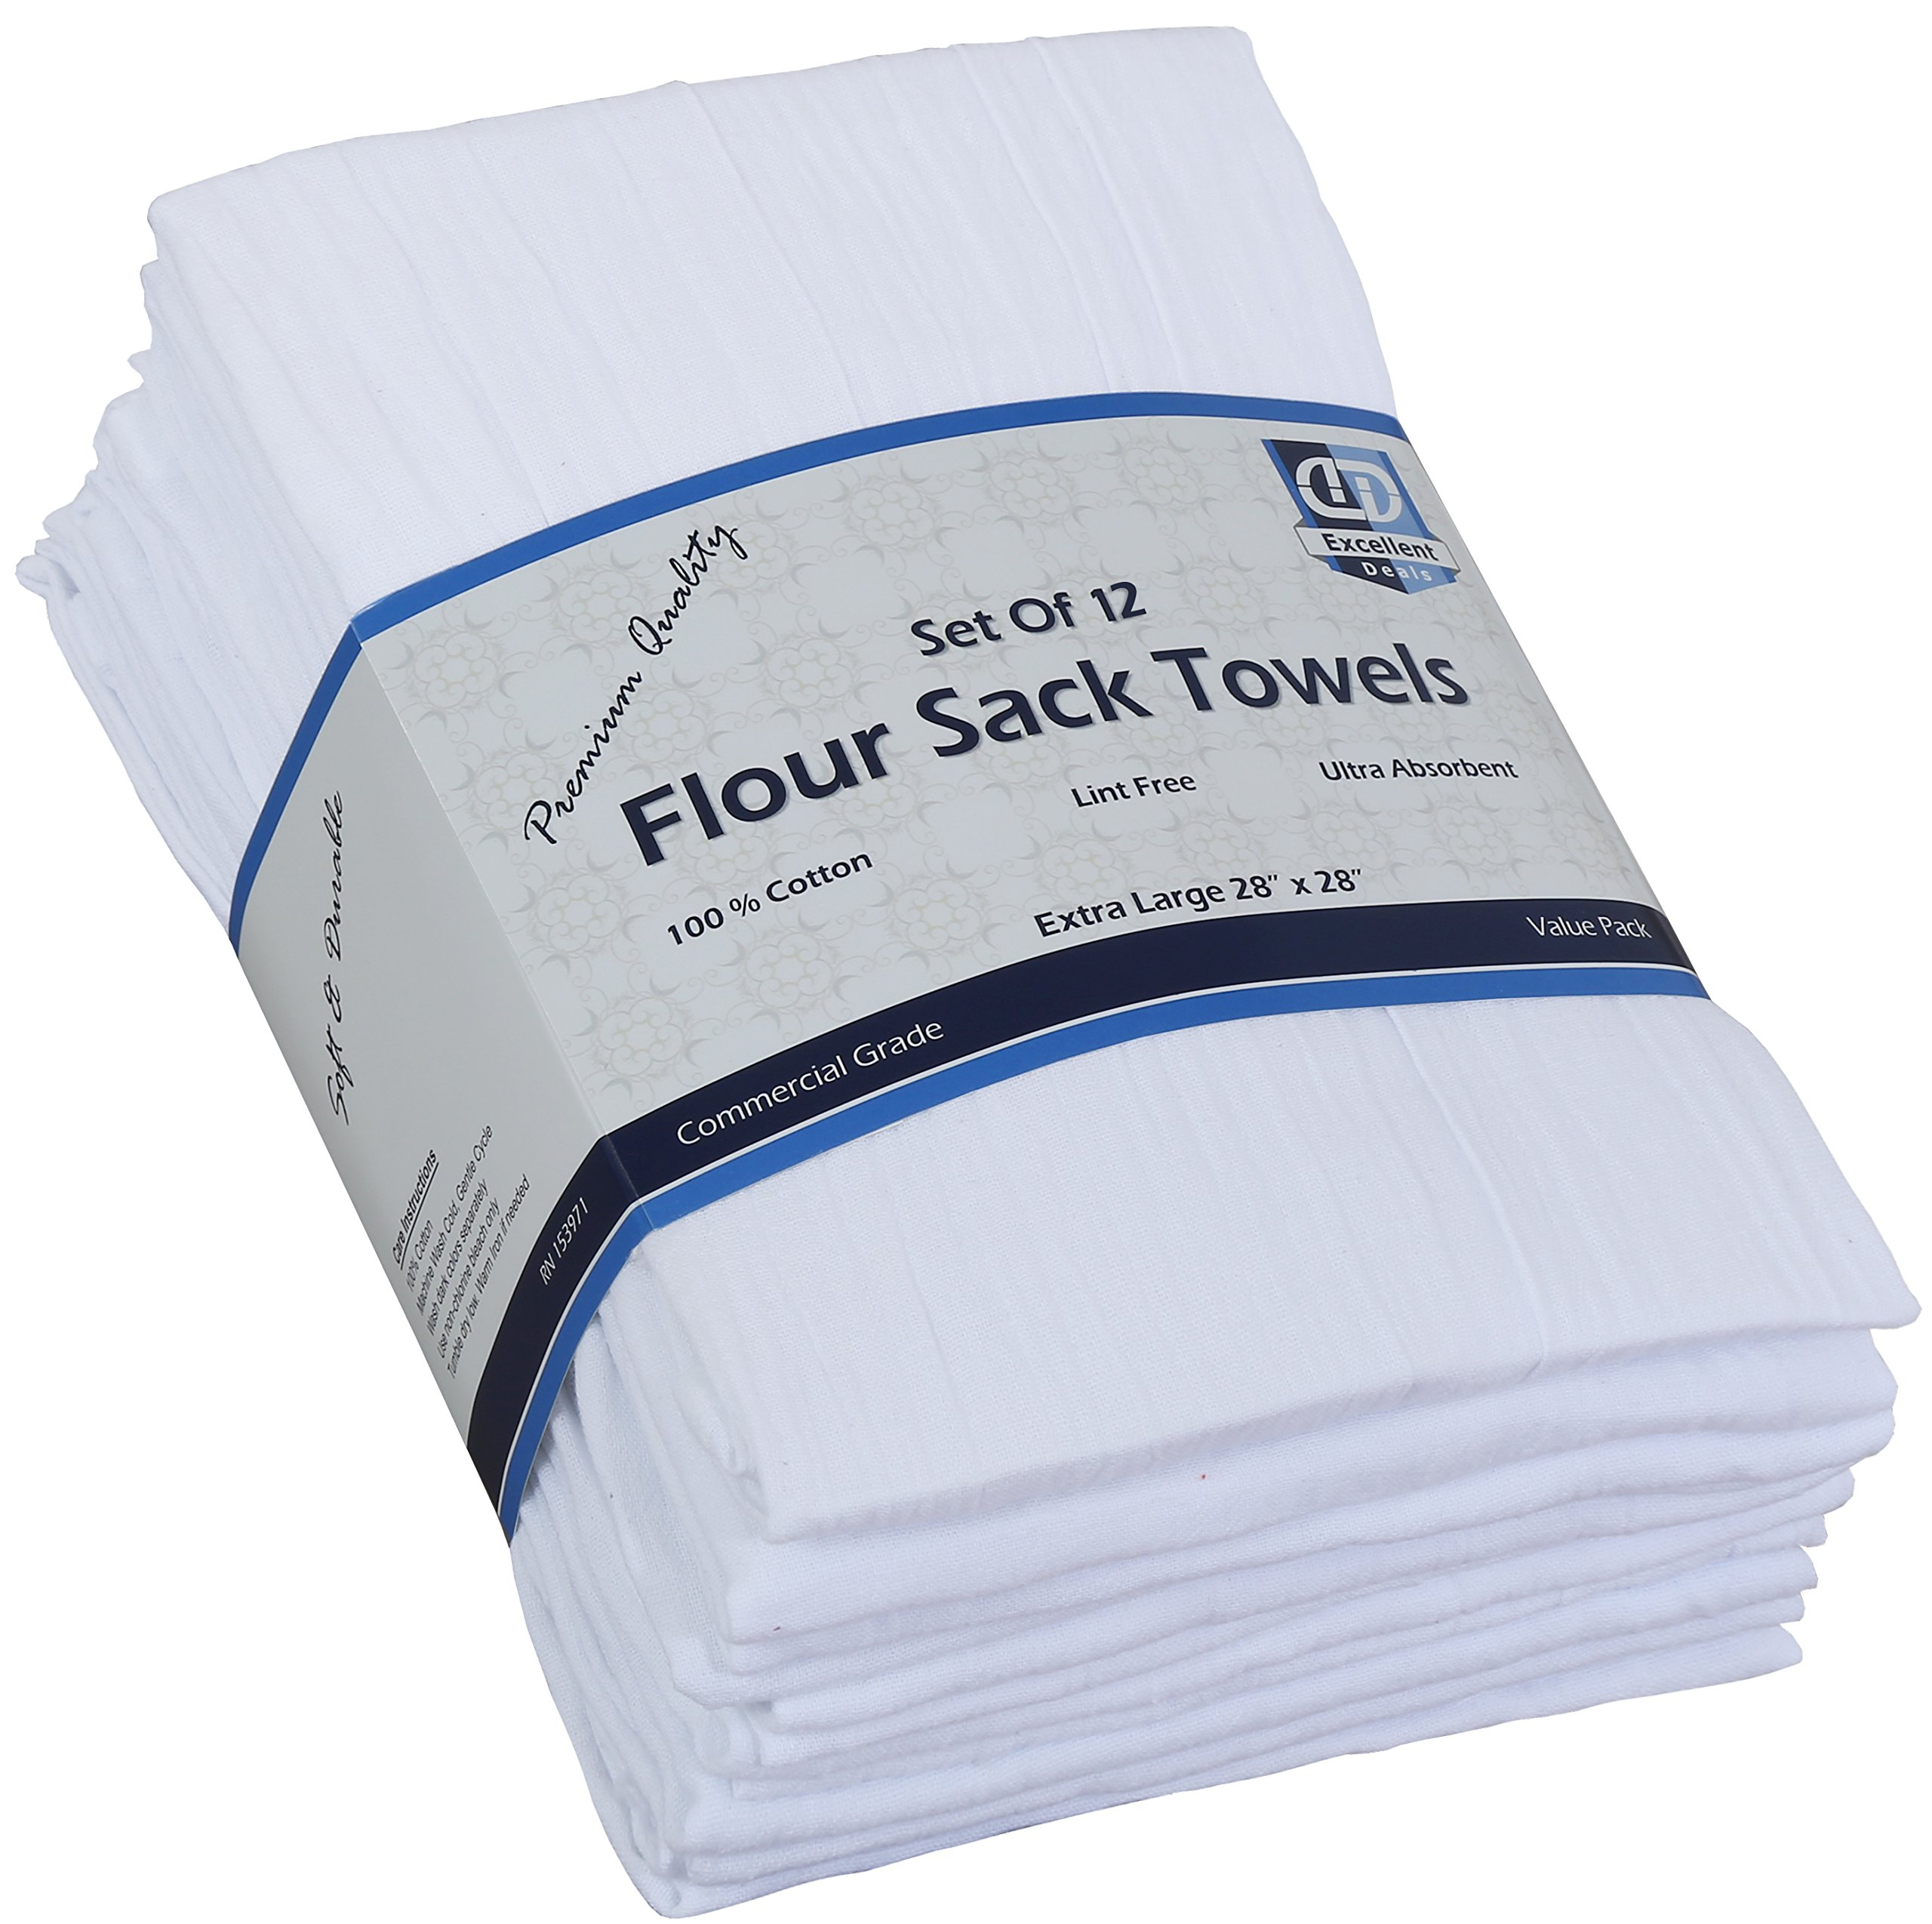 Flour Sack Kitchen Towels (White,12 Pack) 100% Cotton,28x28 Inch Cloth Napkin, Bread wrapper, Cheesecloth, Multi Purpose Kitchen Dish Towels,Bar Towels, Extremely Absorbent & Sturdy By Excellent Deals by Excellent Deals